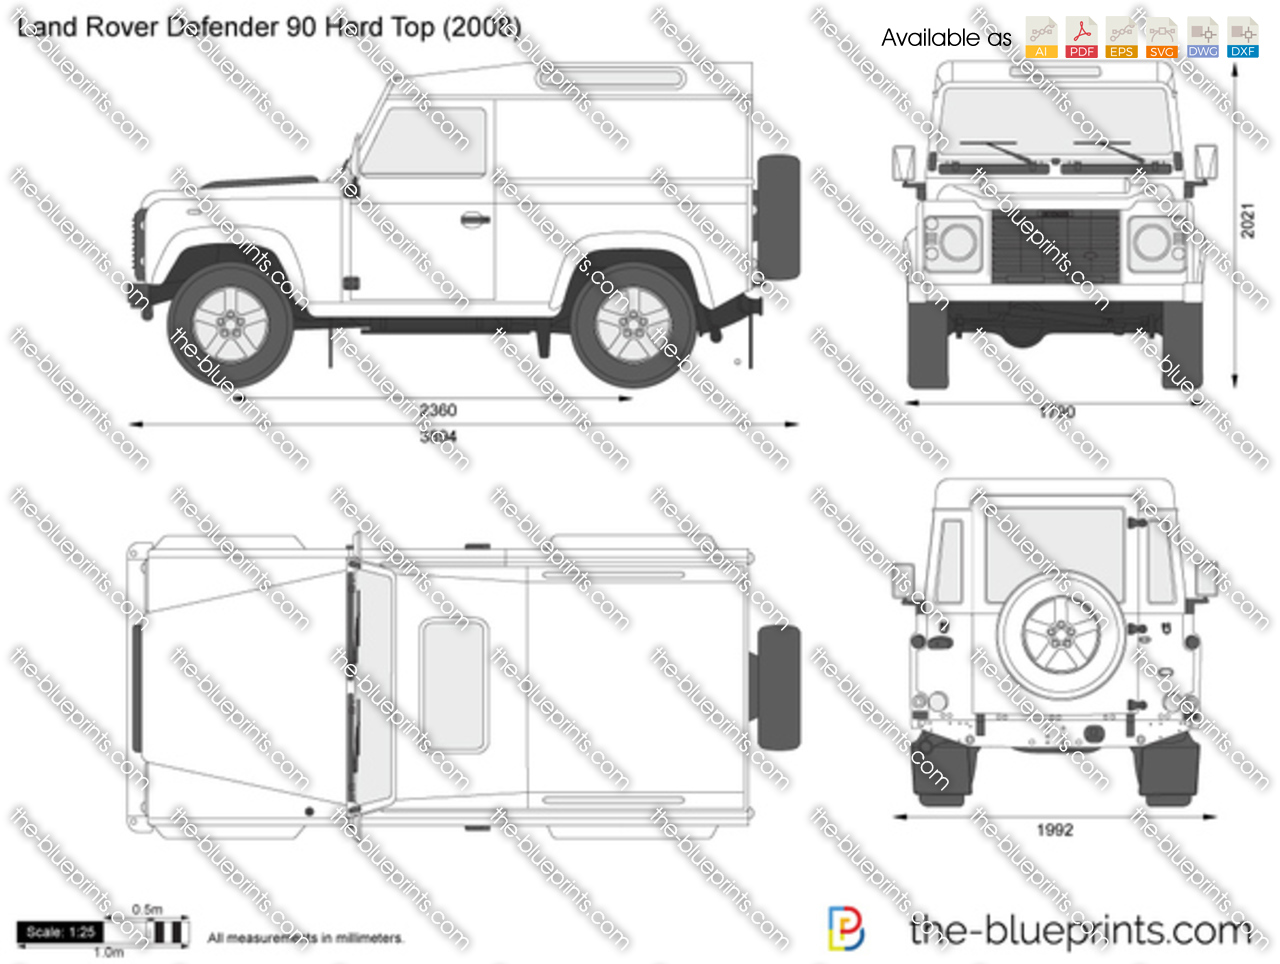 Land Rover Defender 90 Hard Top 2004